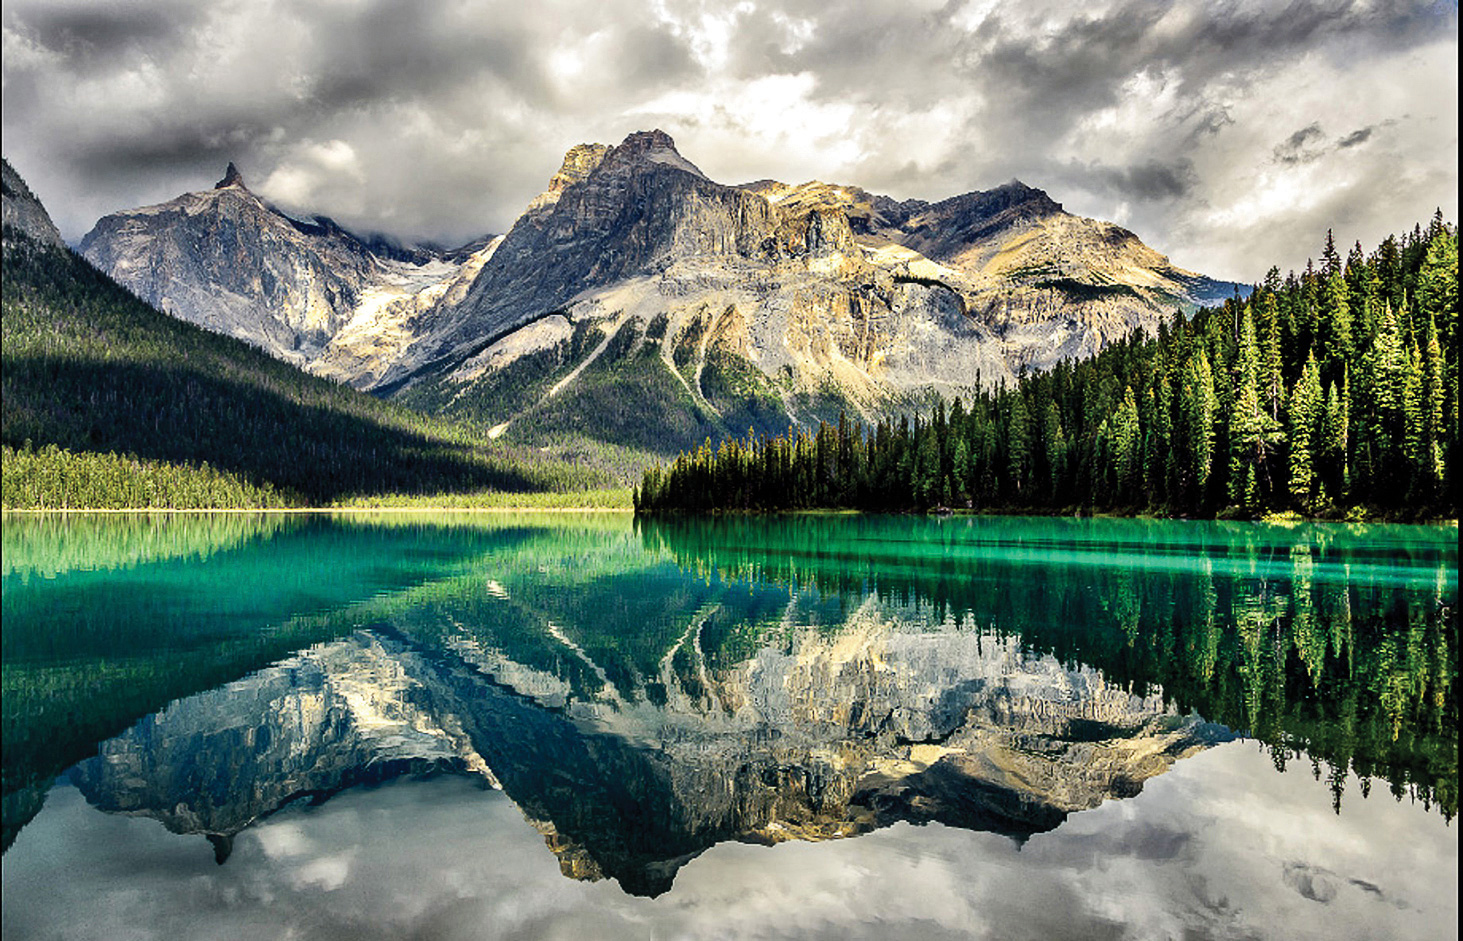 A beautiful example of Canadian Rockies scenery by Kathryn Dannay, featured presenter for the June Camera Club meeting.